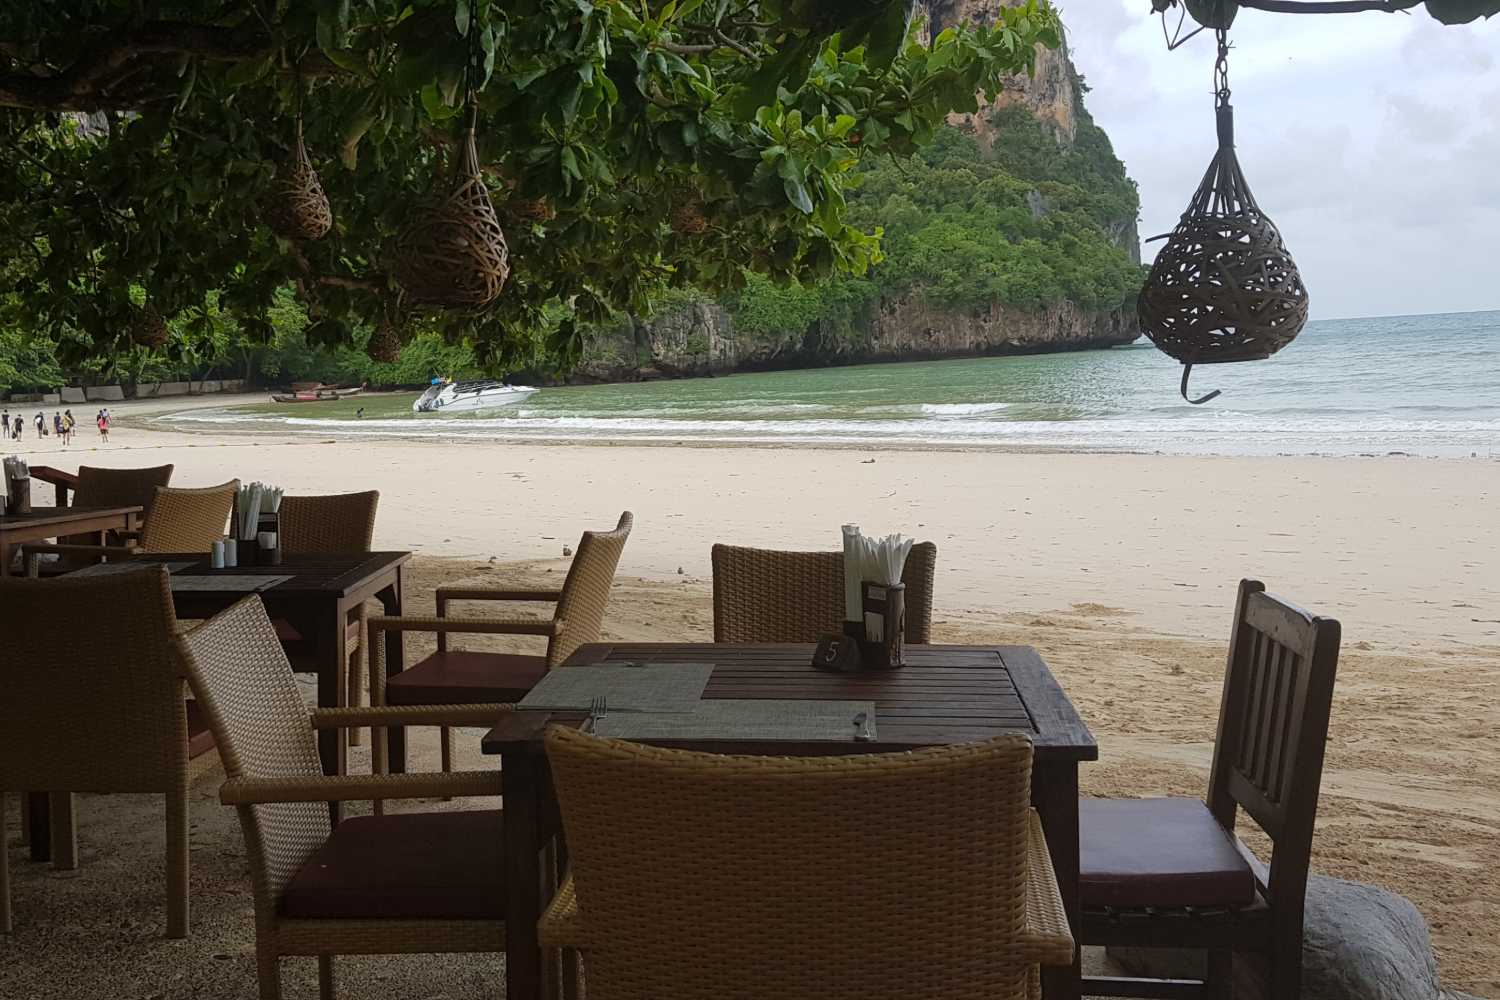 The restaurant on the beach of Railay West of the Railay Village Resort & Spa